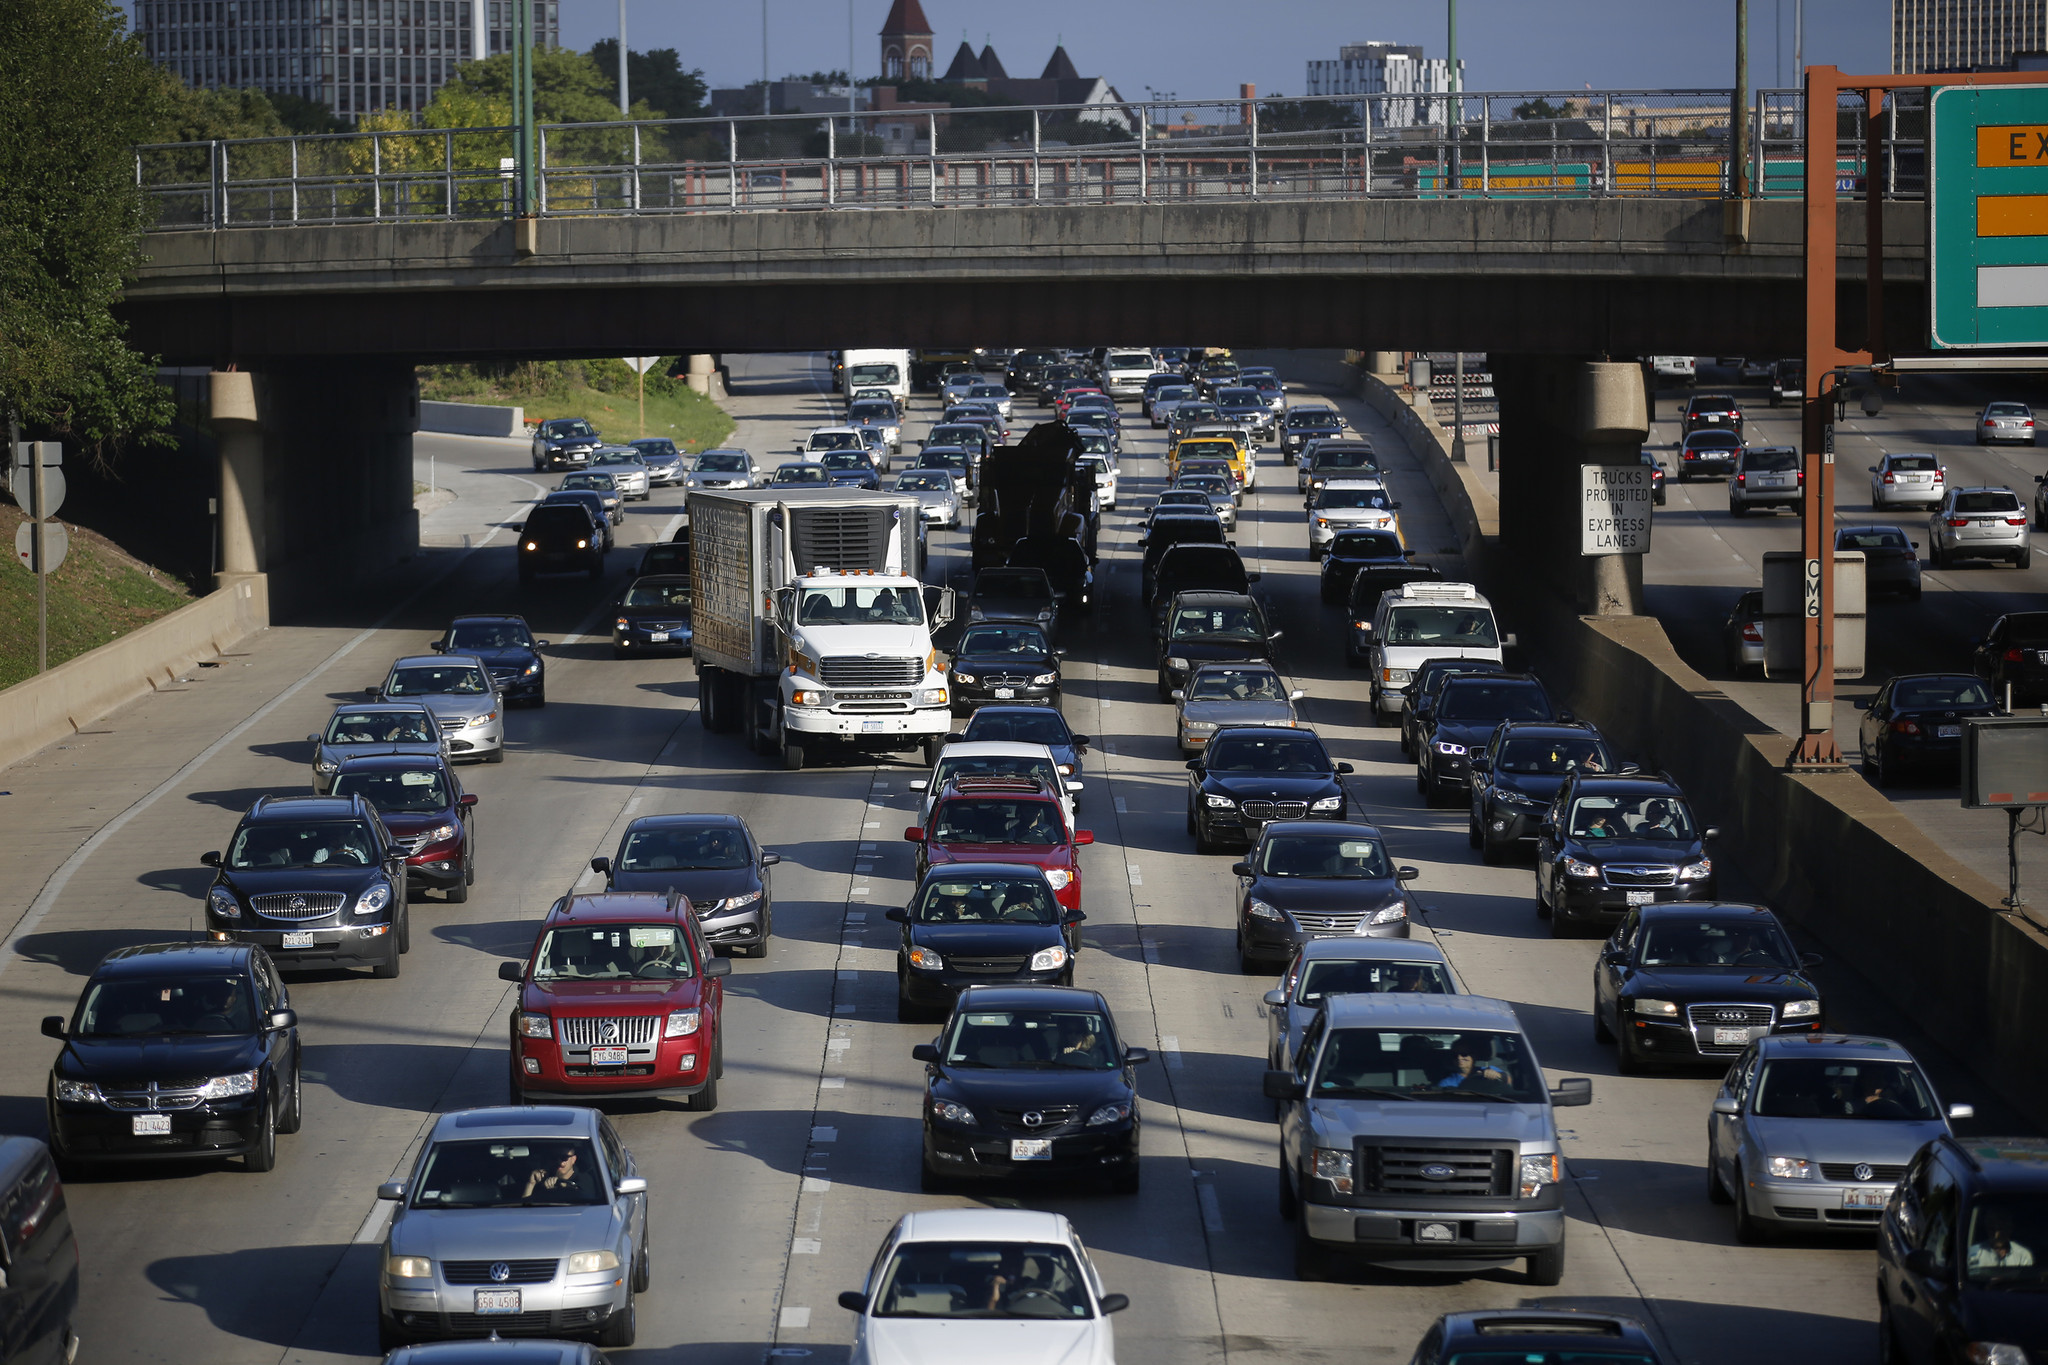 If driving has peaked in major cities, what's next?